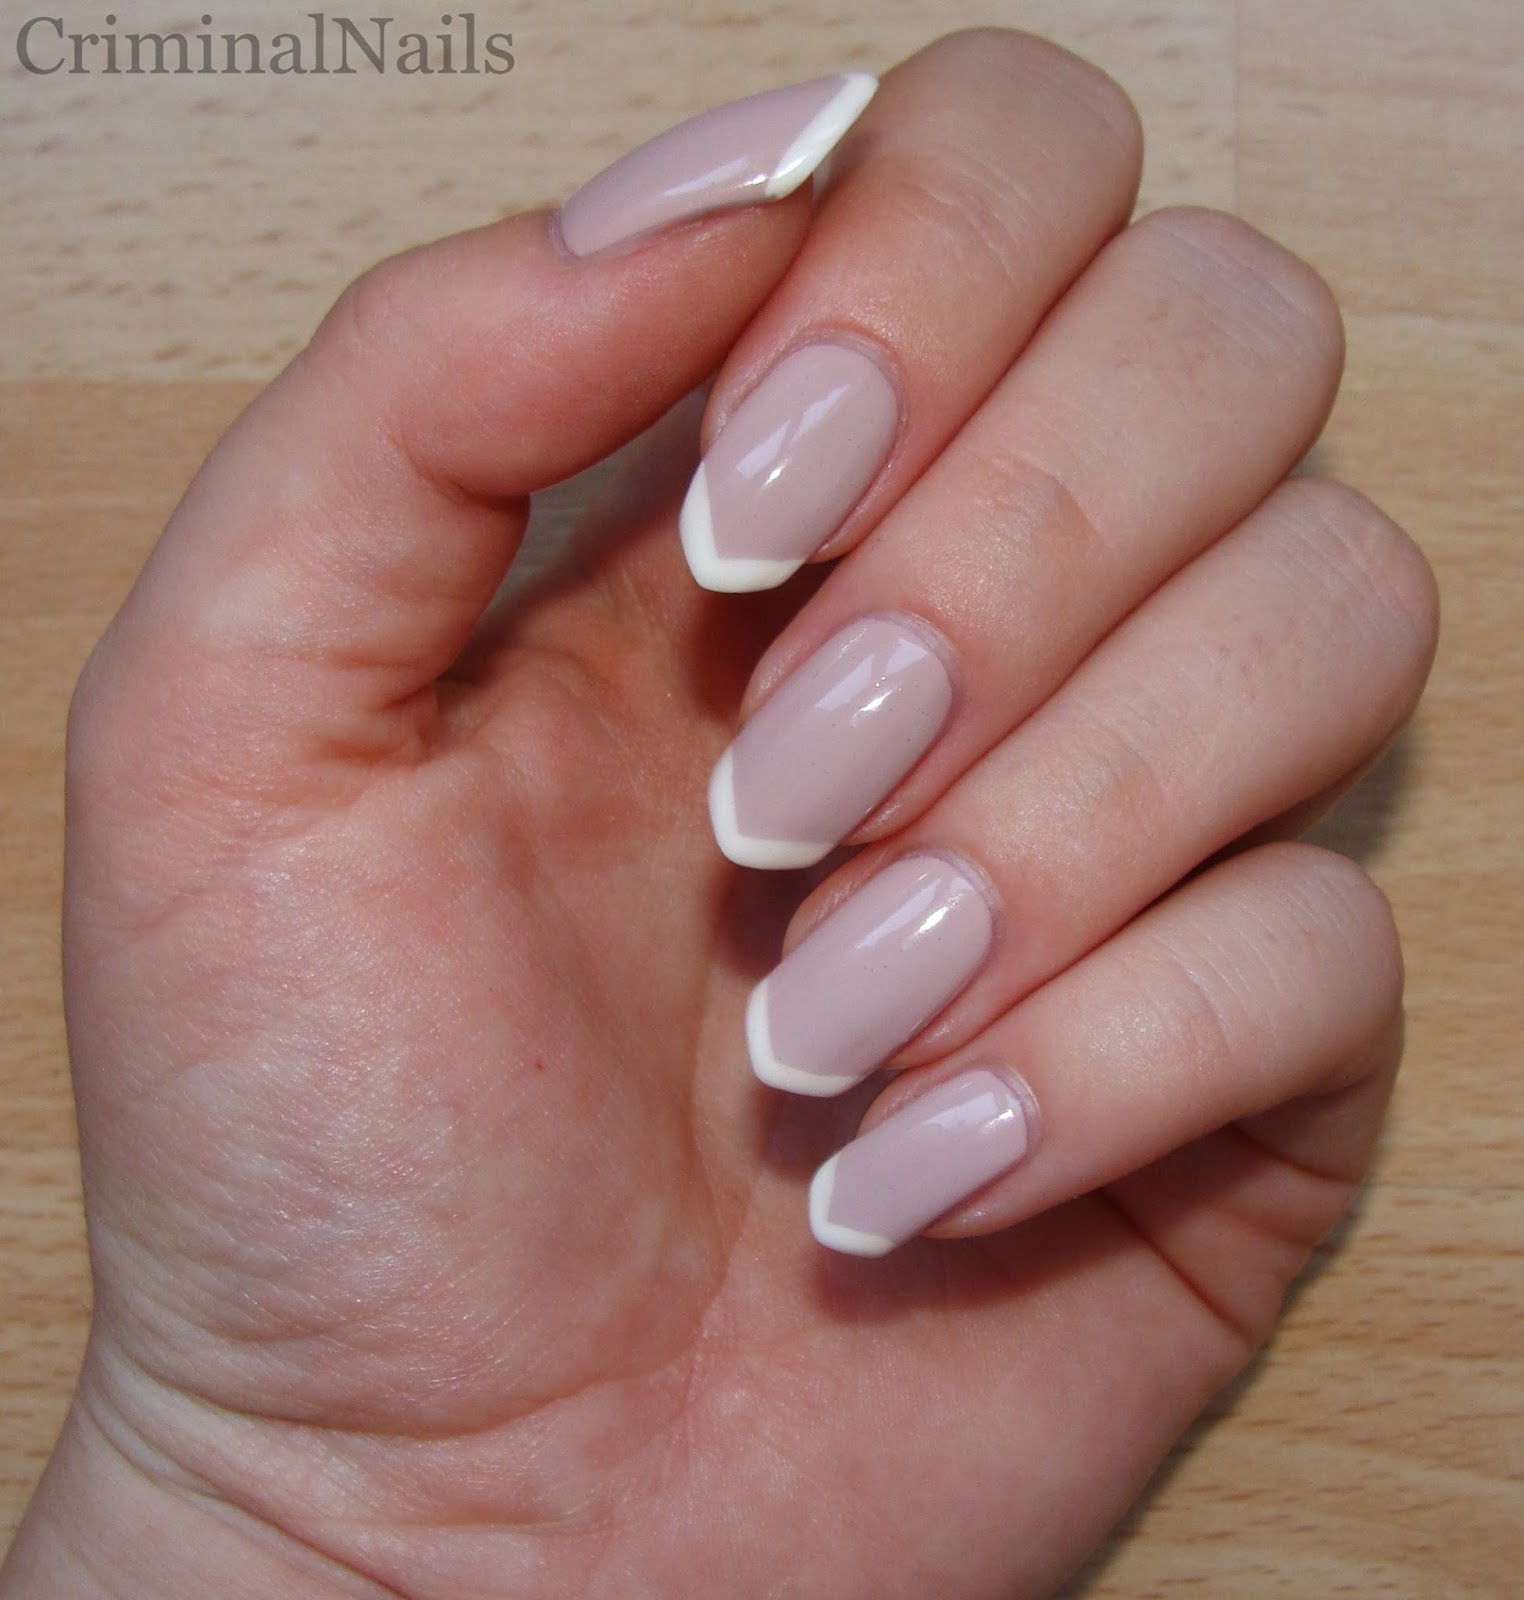 Criminal Nails: French manicure on pointy claws + snake update.